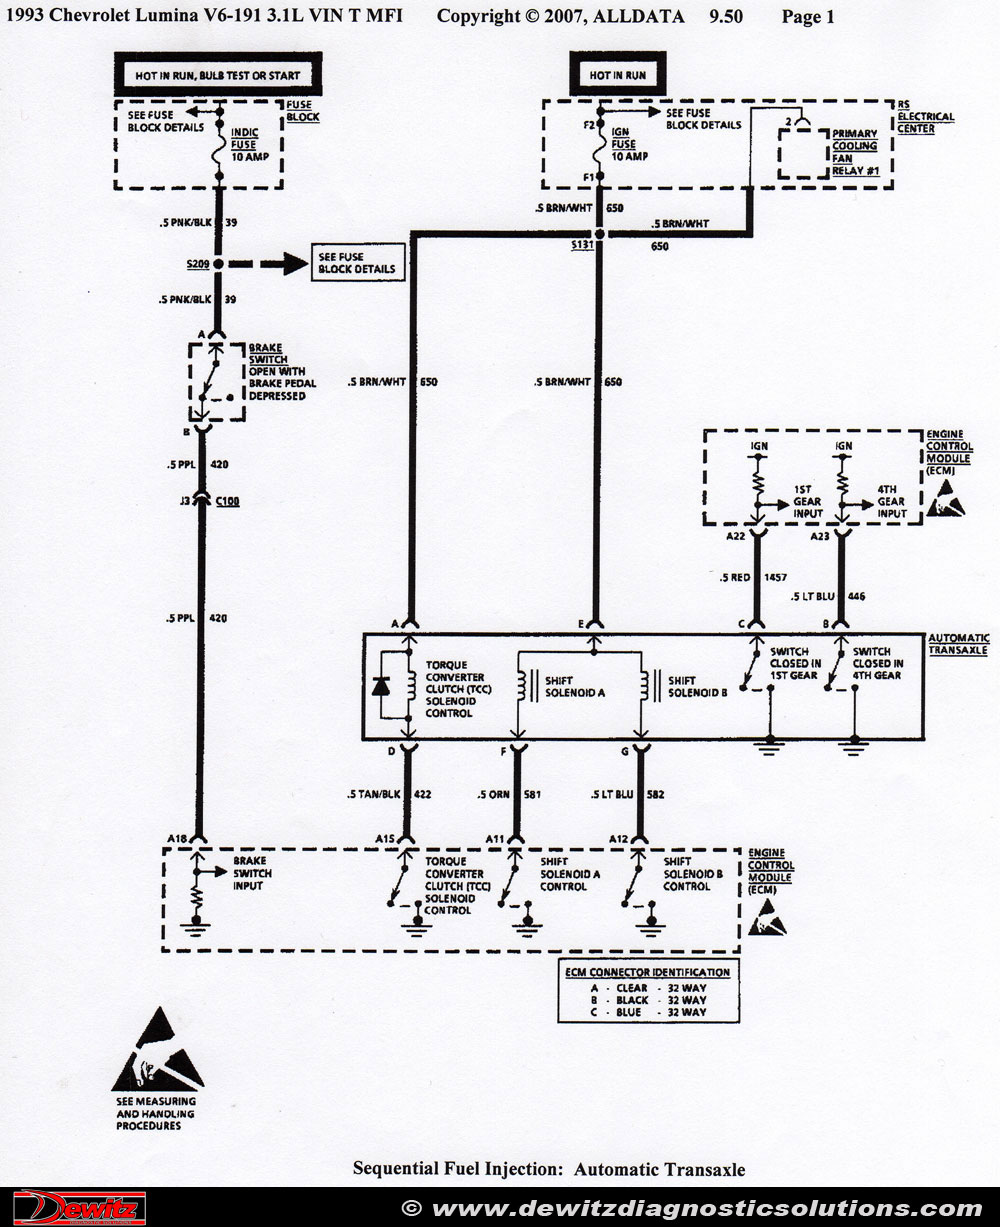 Electrical Wiring Diagrams 1992 Chevy Lumina Library Diagram Truck Chevrolet 4t60e Transmission Shifting Issues Power Window